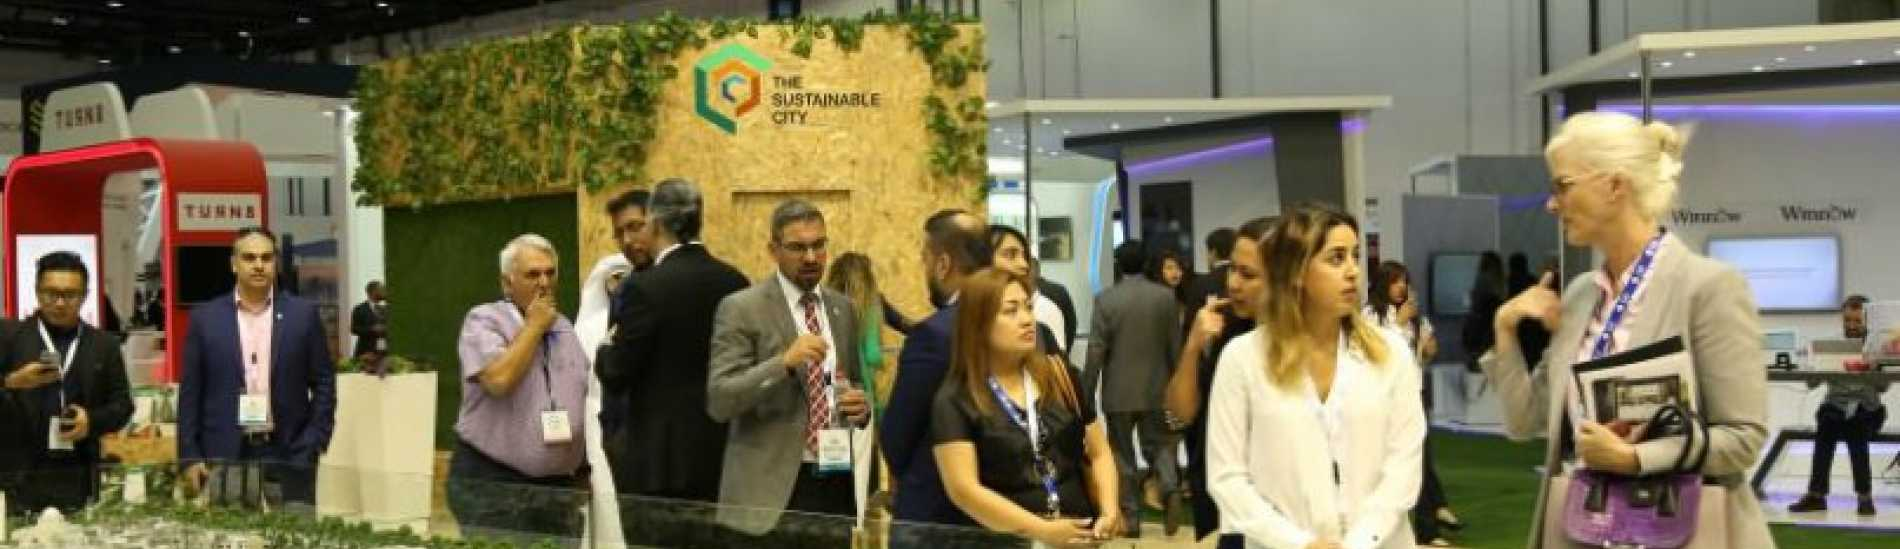 Investment Opportunities at the Dubai Property Festival 18th April 2018